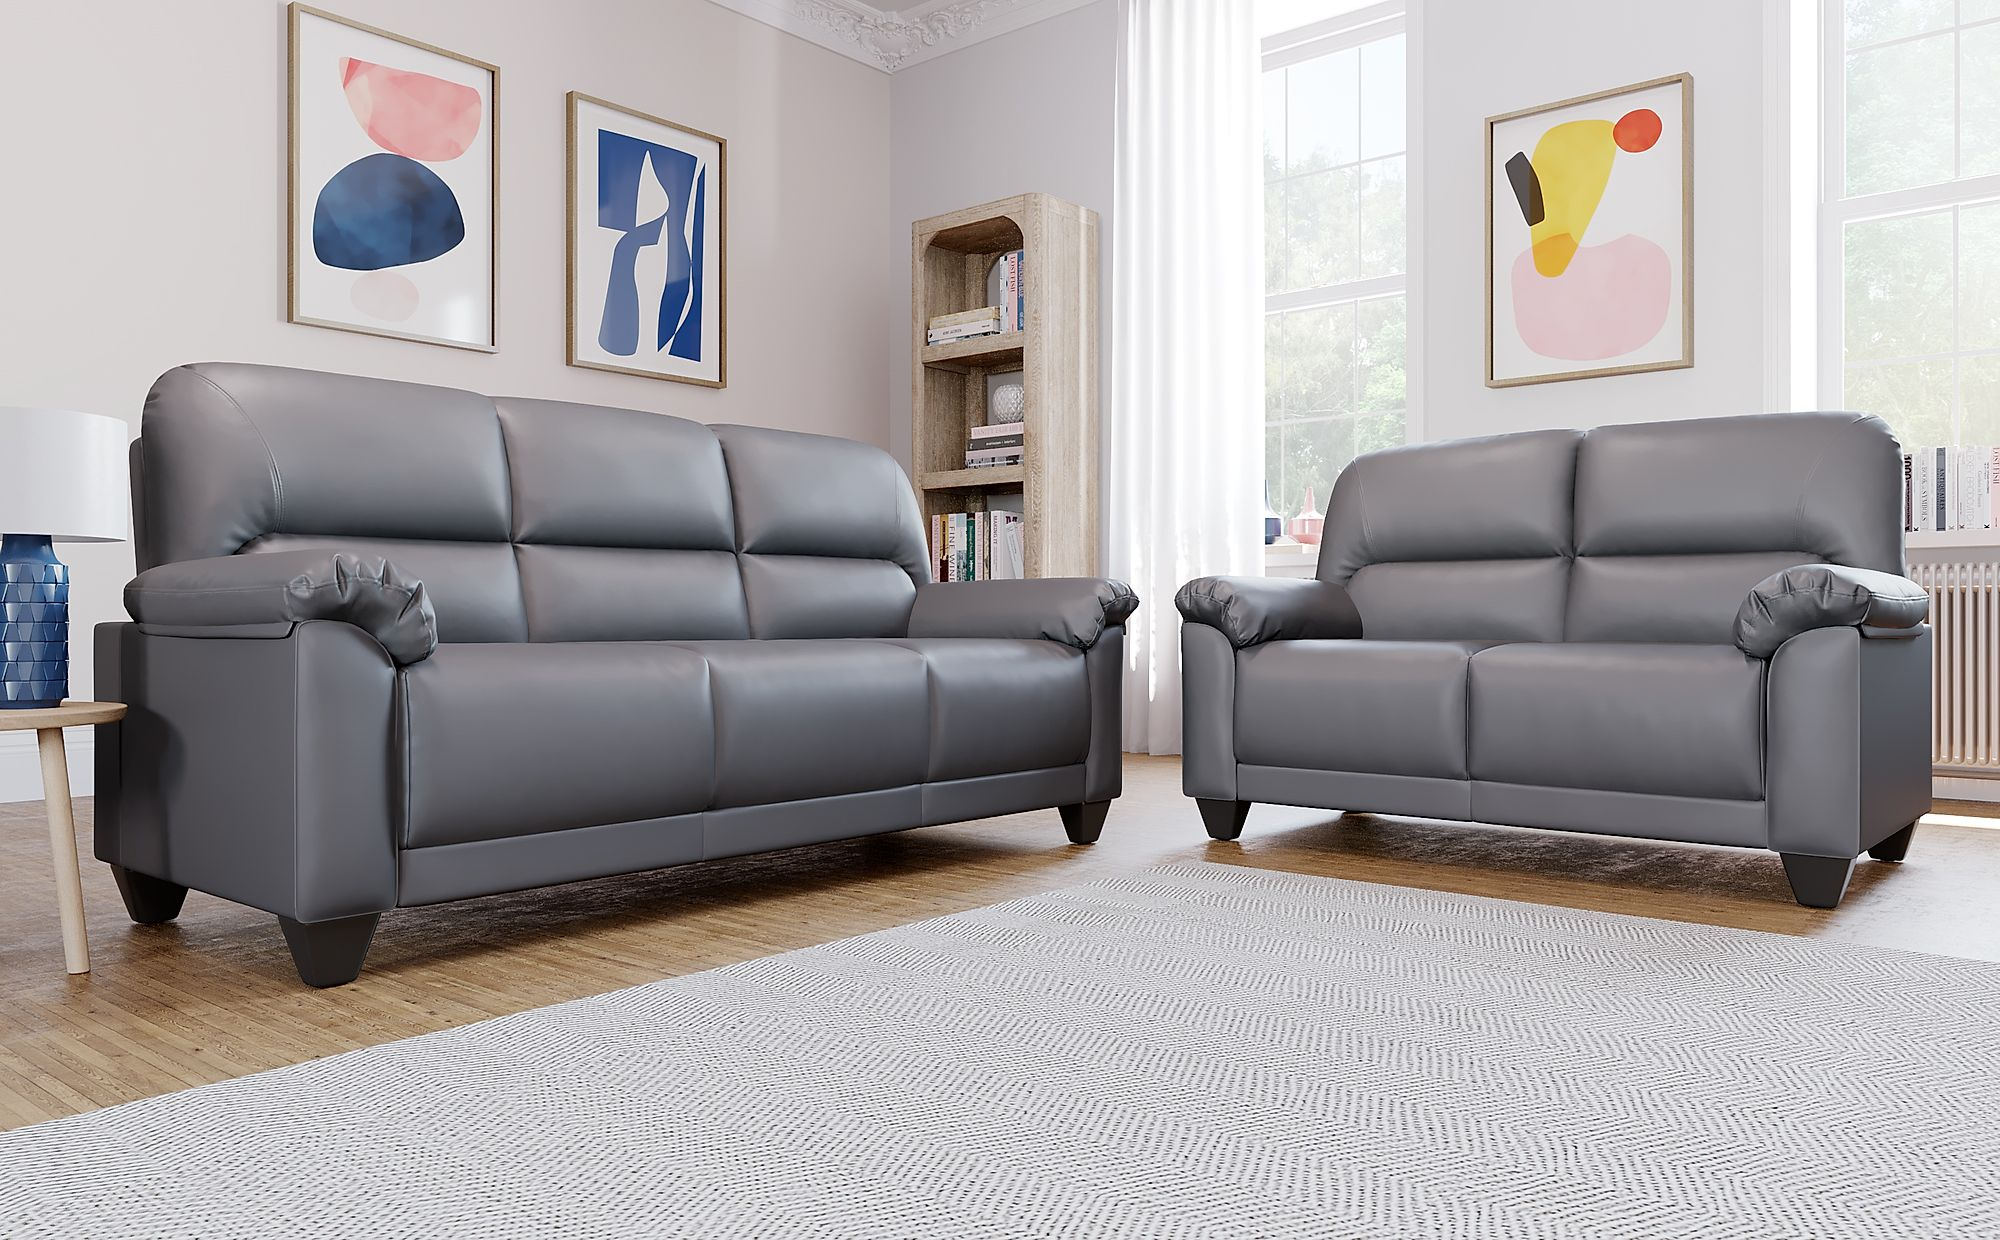 Surprising Kenton Small Grey Leather 3 2 Seater Sofa Set Home Remodeling Inspirations Cosmcuboardxyz